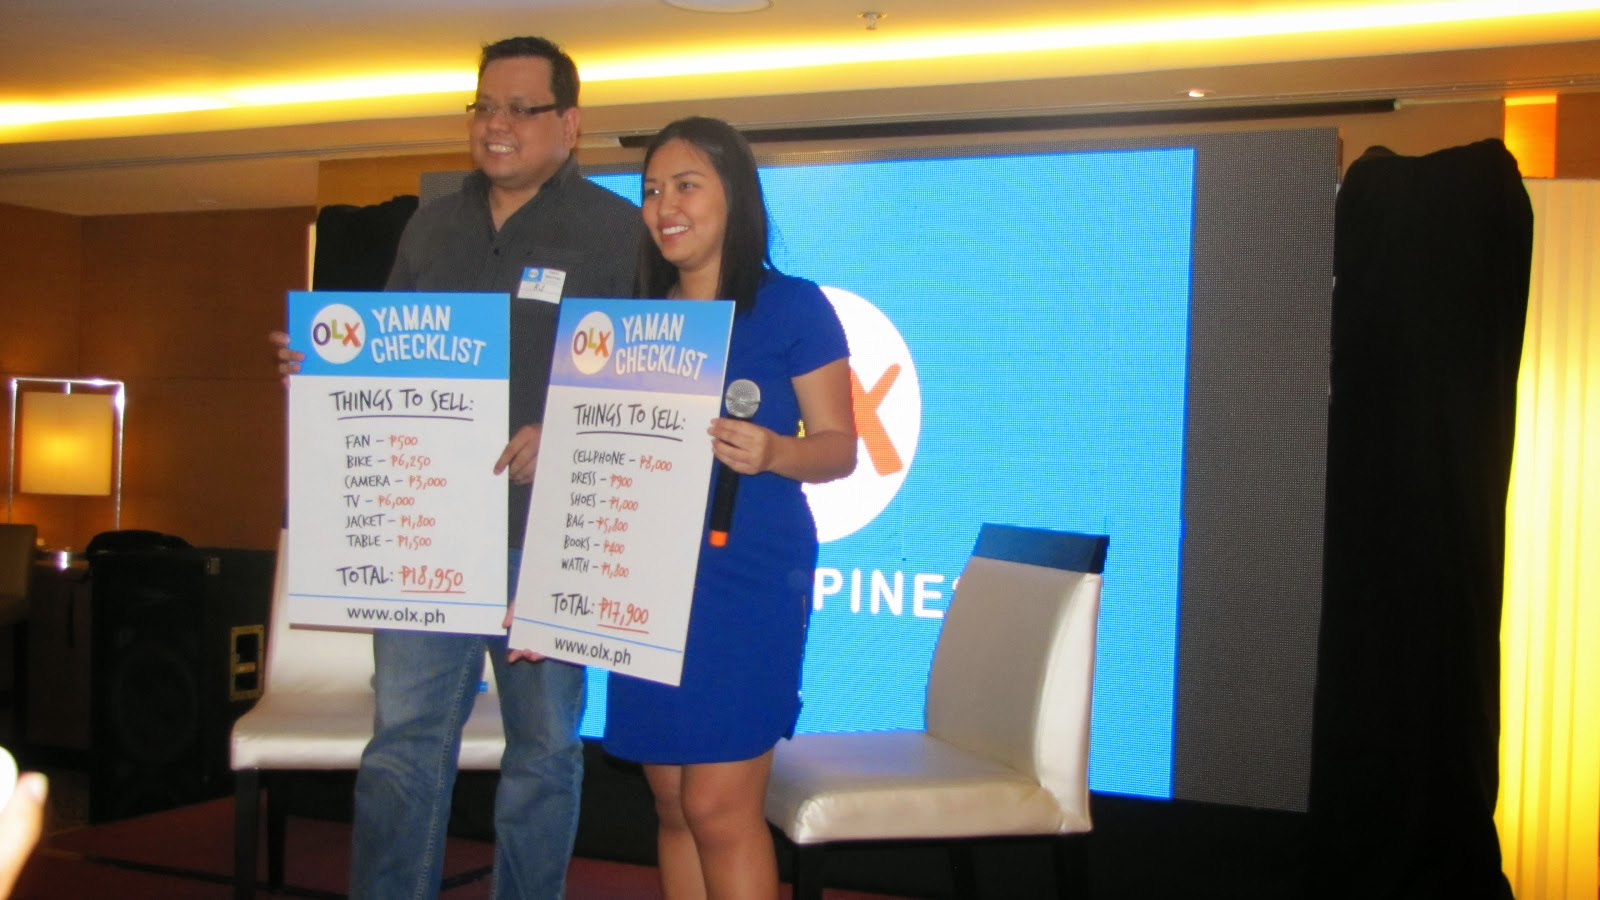 FTW! Blog, OLX, Cebu Media Launch, Press Release, OLX.ph